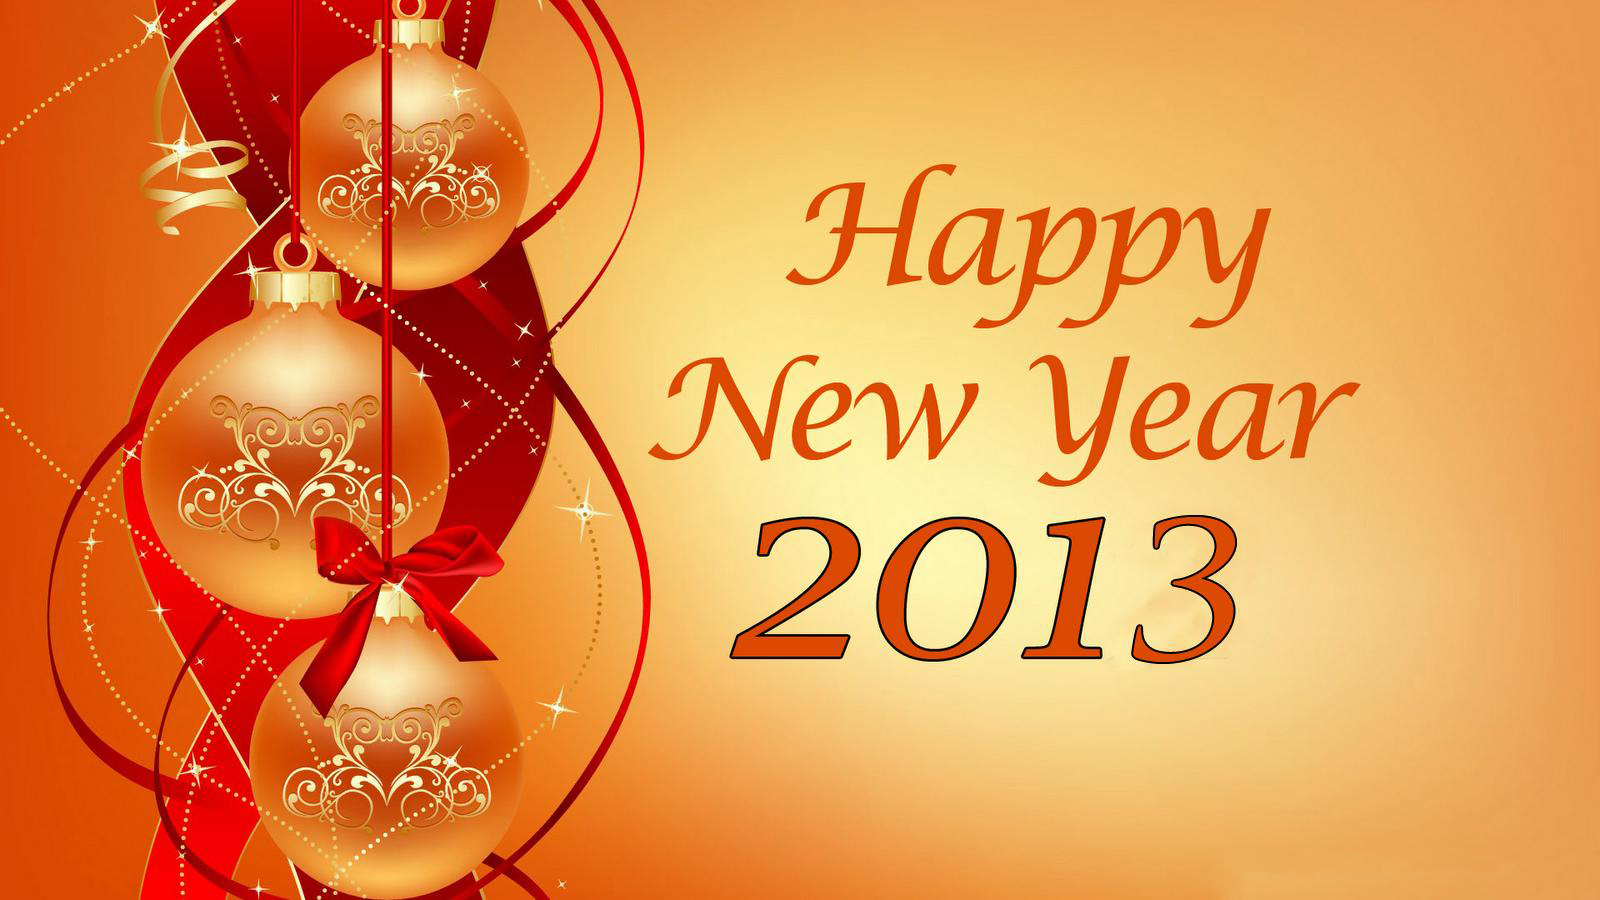 Happy New Year.6 Greeting For New Year In Hindi 2014